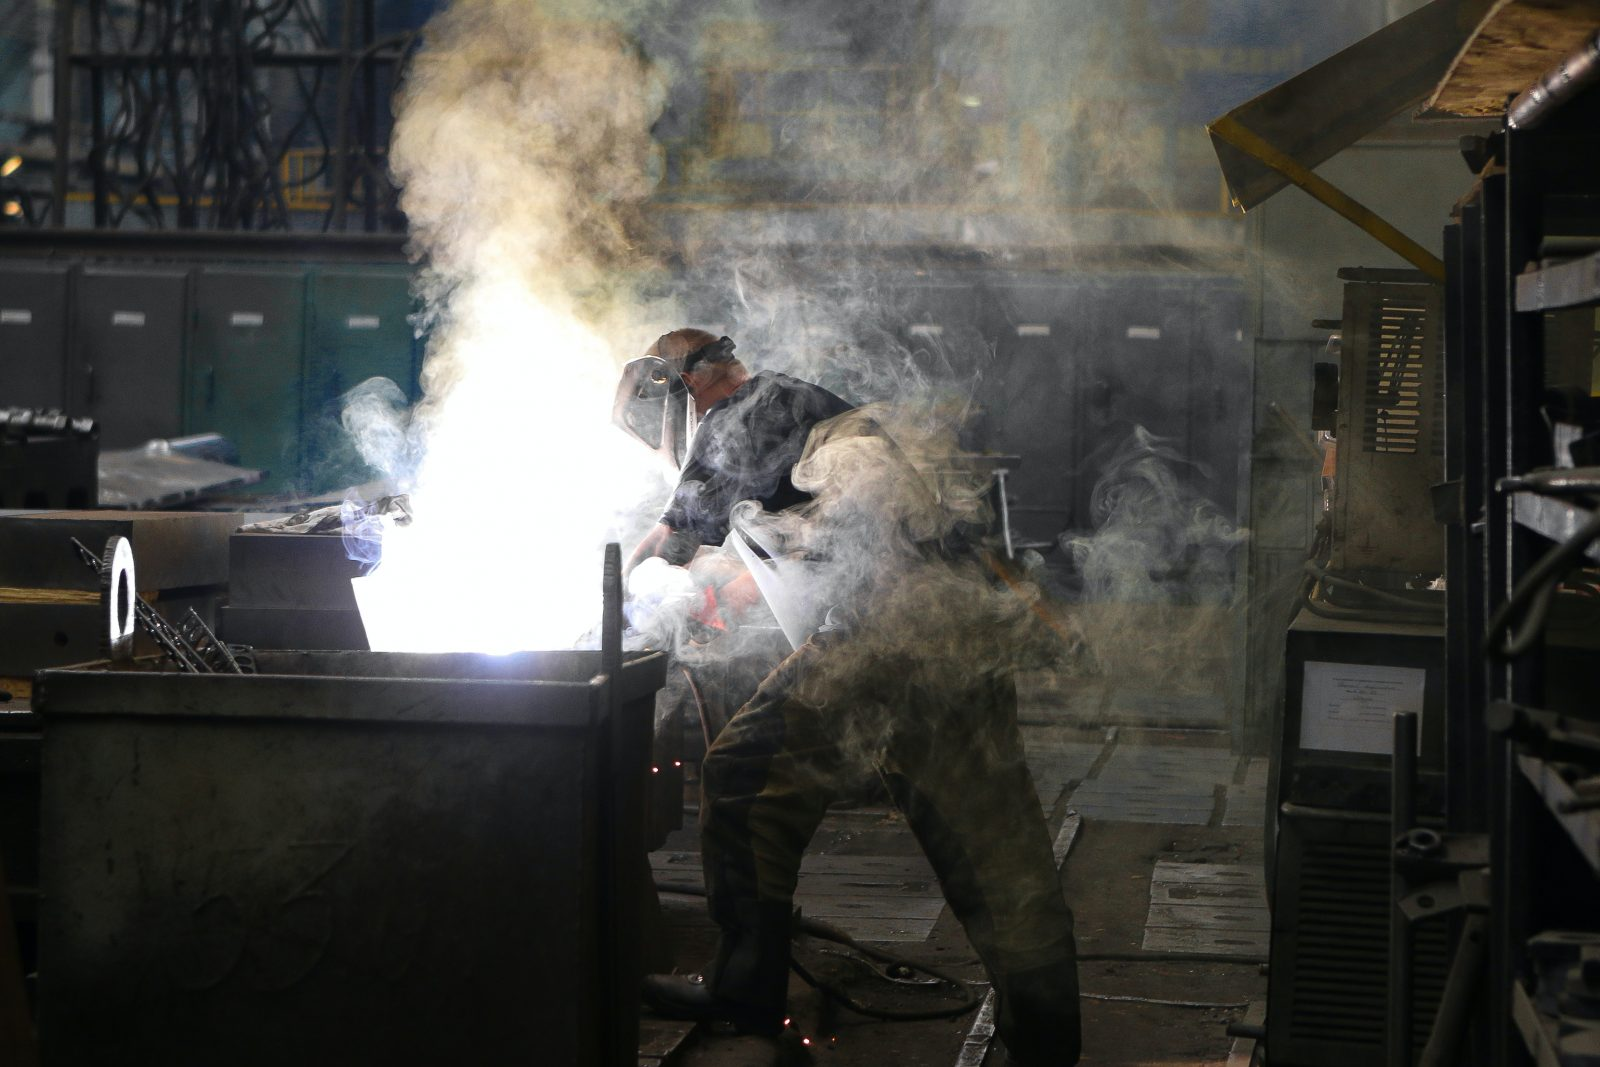 examples of unsafe working conditions